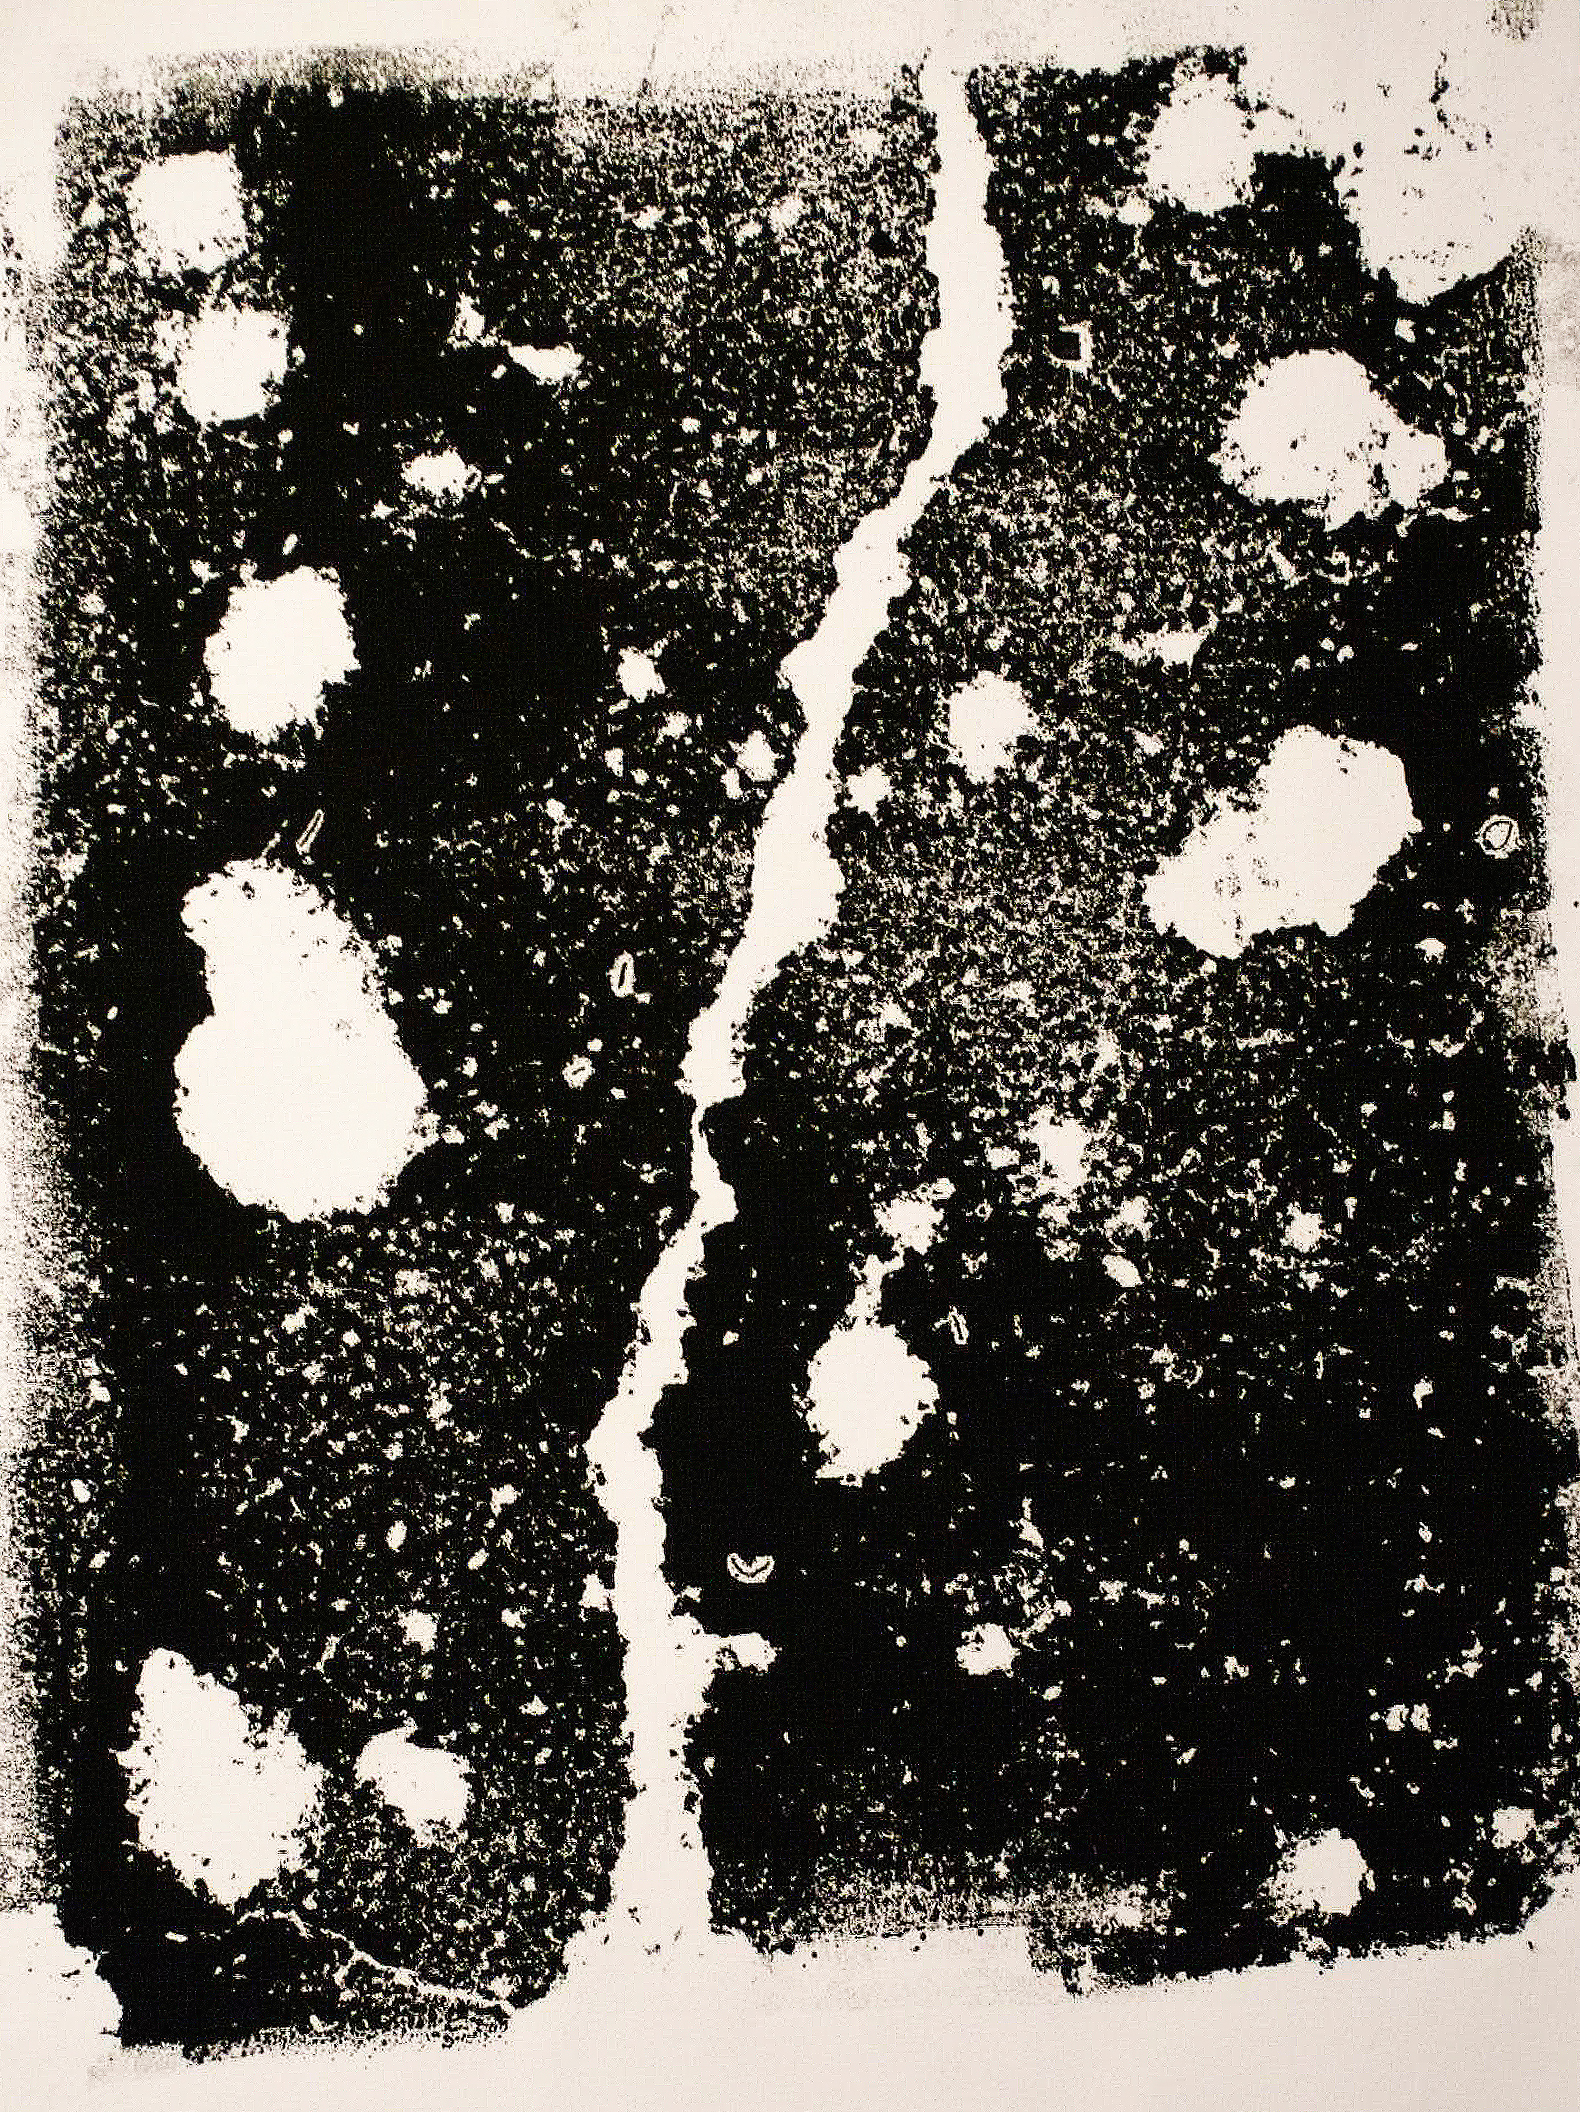 '50 years cracking' Monoprint. 2010